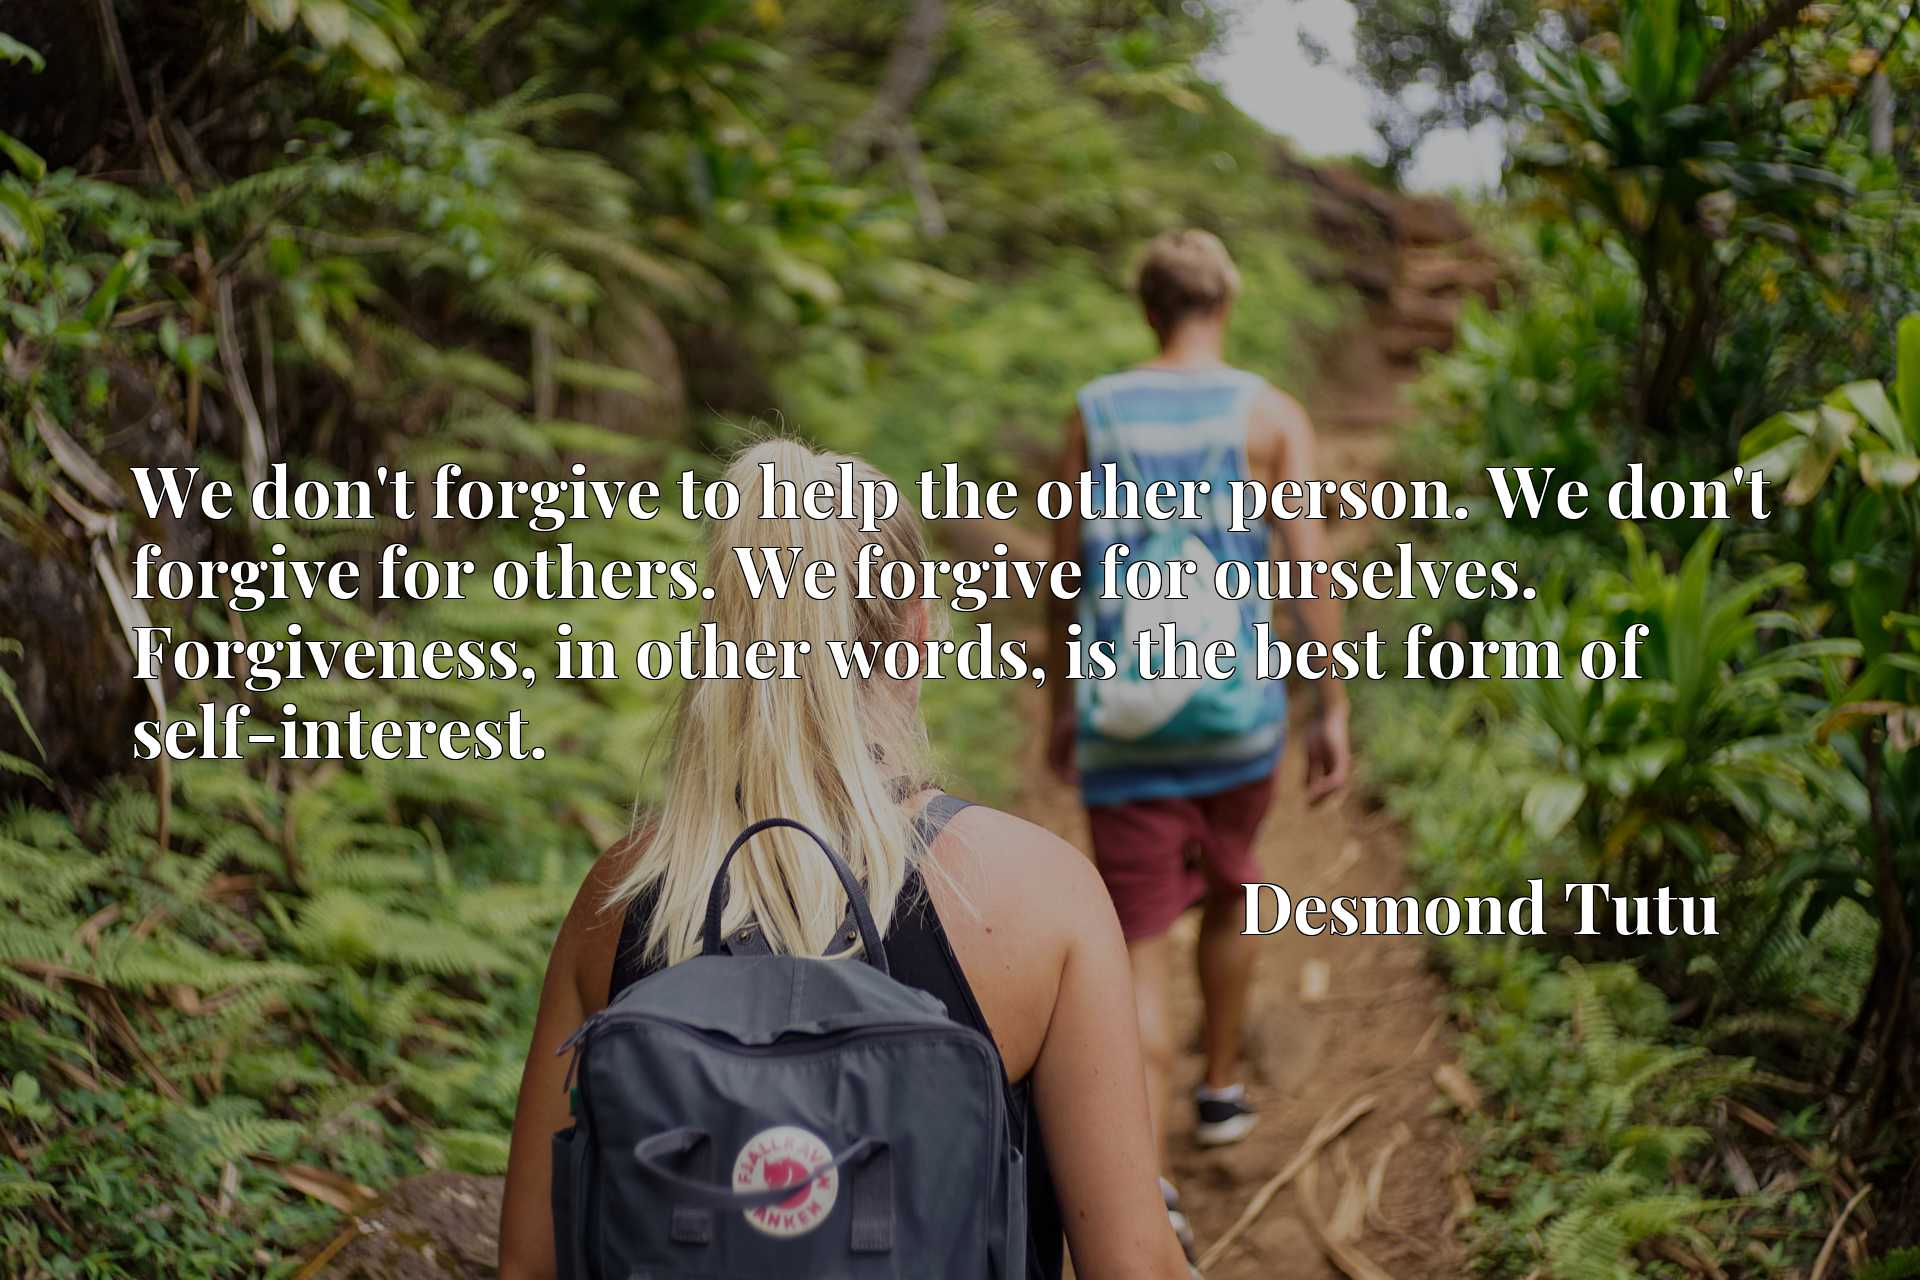 We don't forgive to help the other person. We don't forgive for others. We forgive for ourselves. Forgiveness, in other words, is the best form of self-interest.